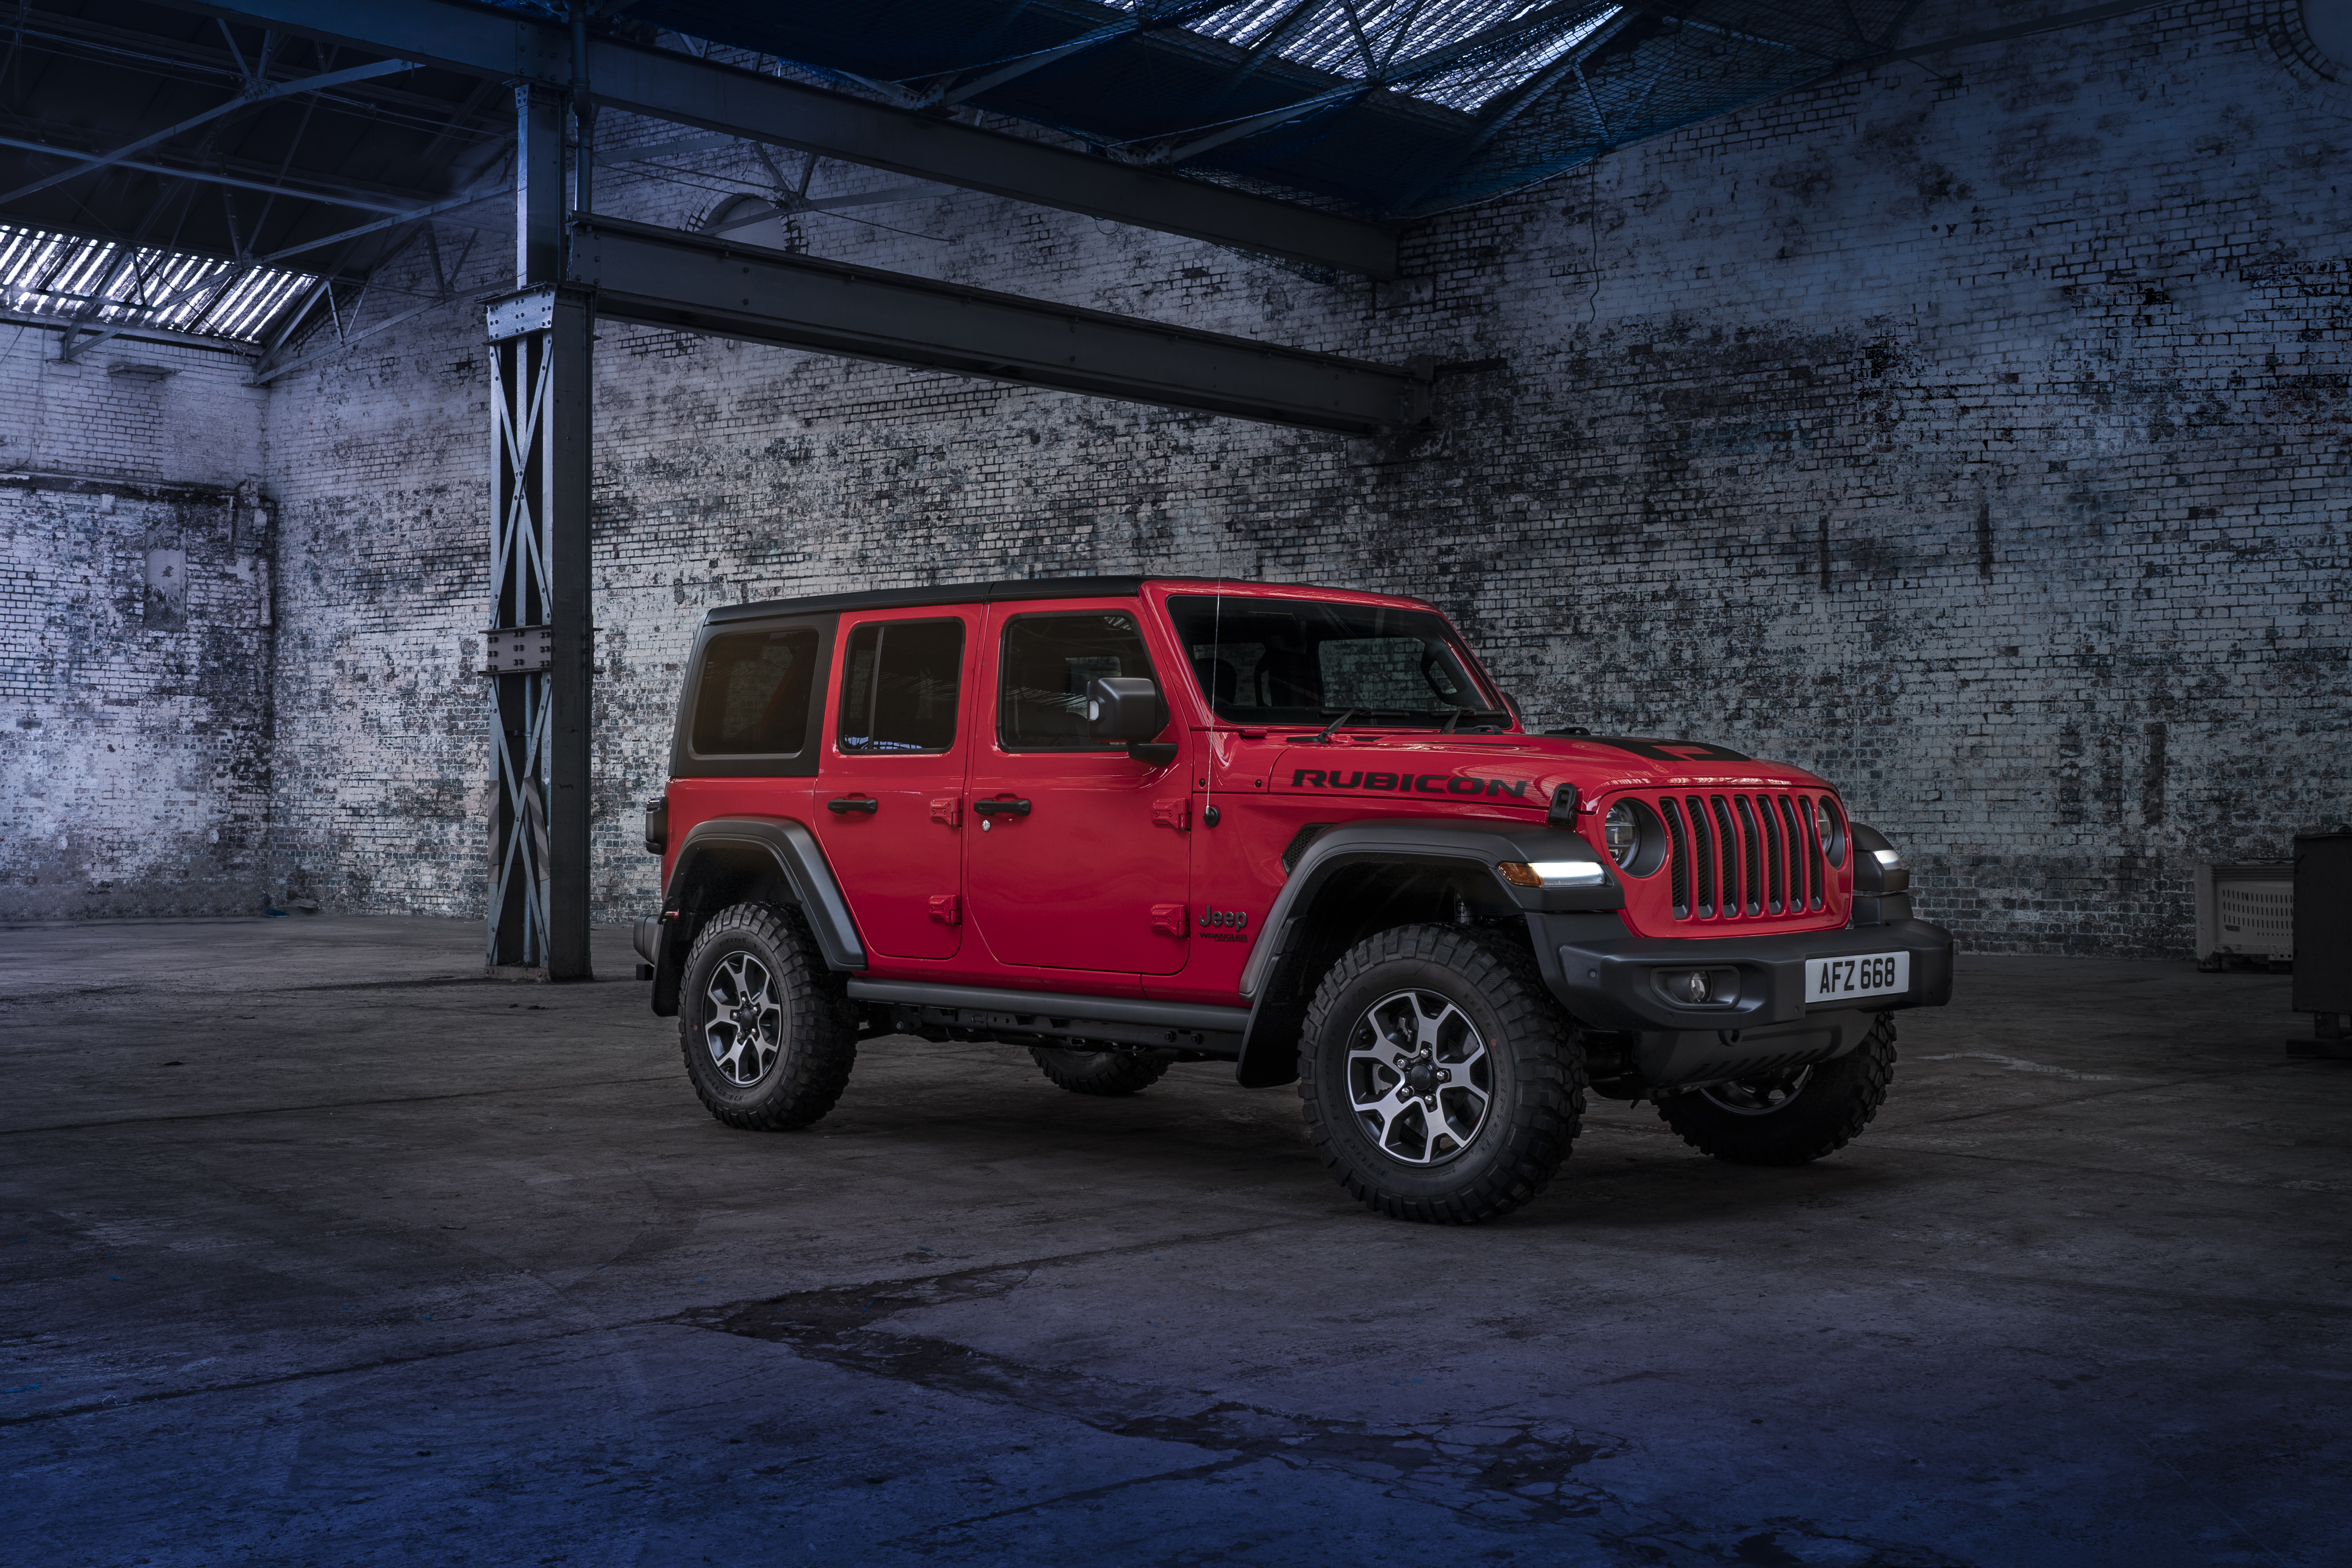 jeep wrangler unlimited rubicon 4k 1618920051 - Jeep Wrangler Unlimited Rubicon 4k - Jeep Wrangler Unlimited Rubicon 4k wallpapers